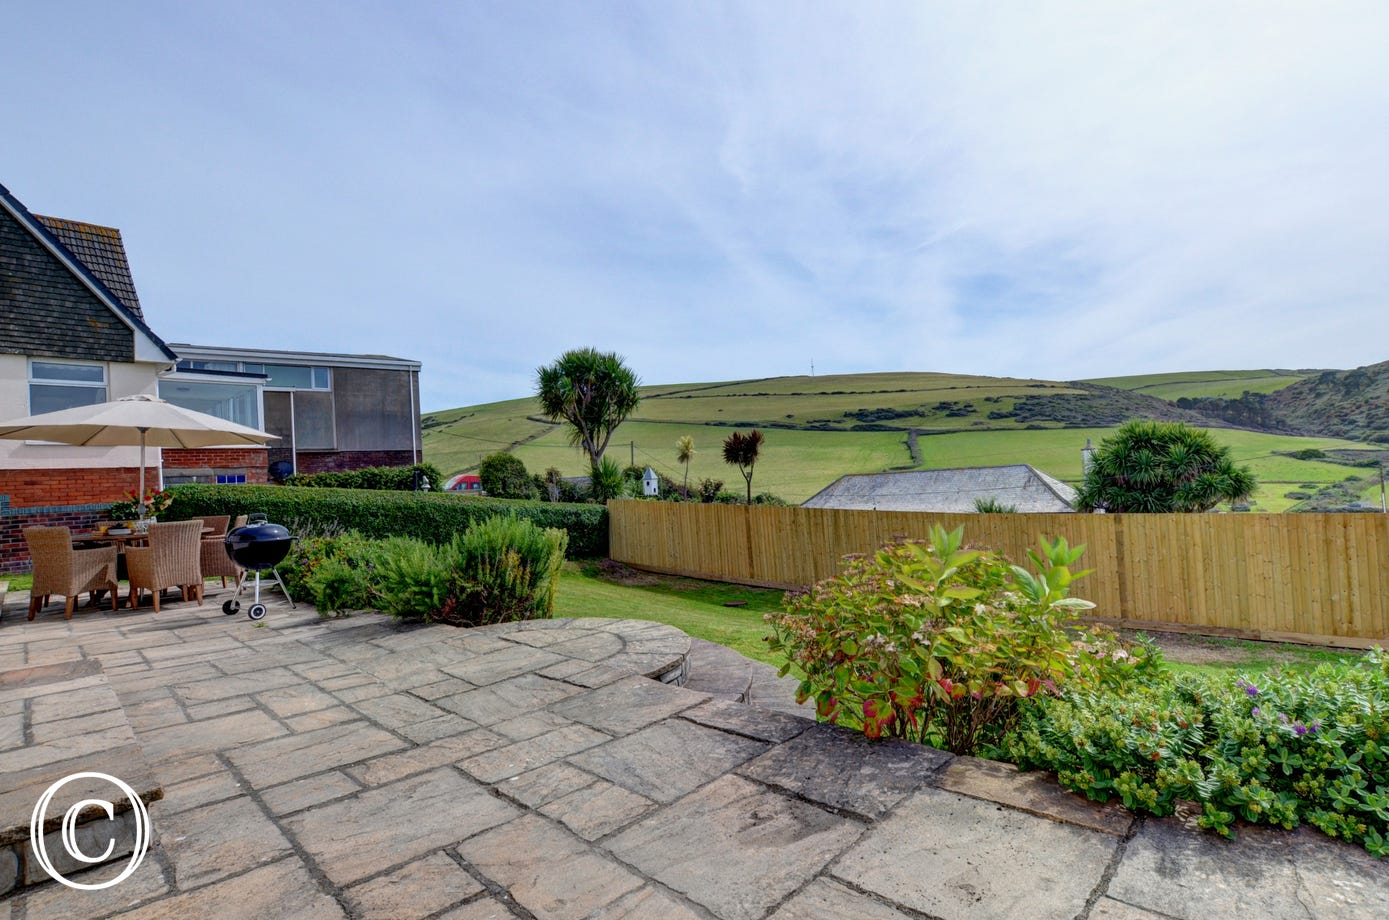 Large patio and garden area, perfect for socialising in after a day at the beach